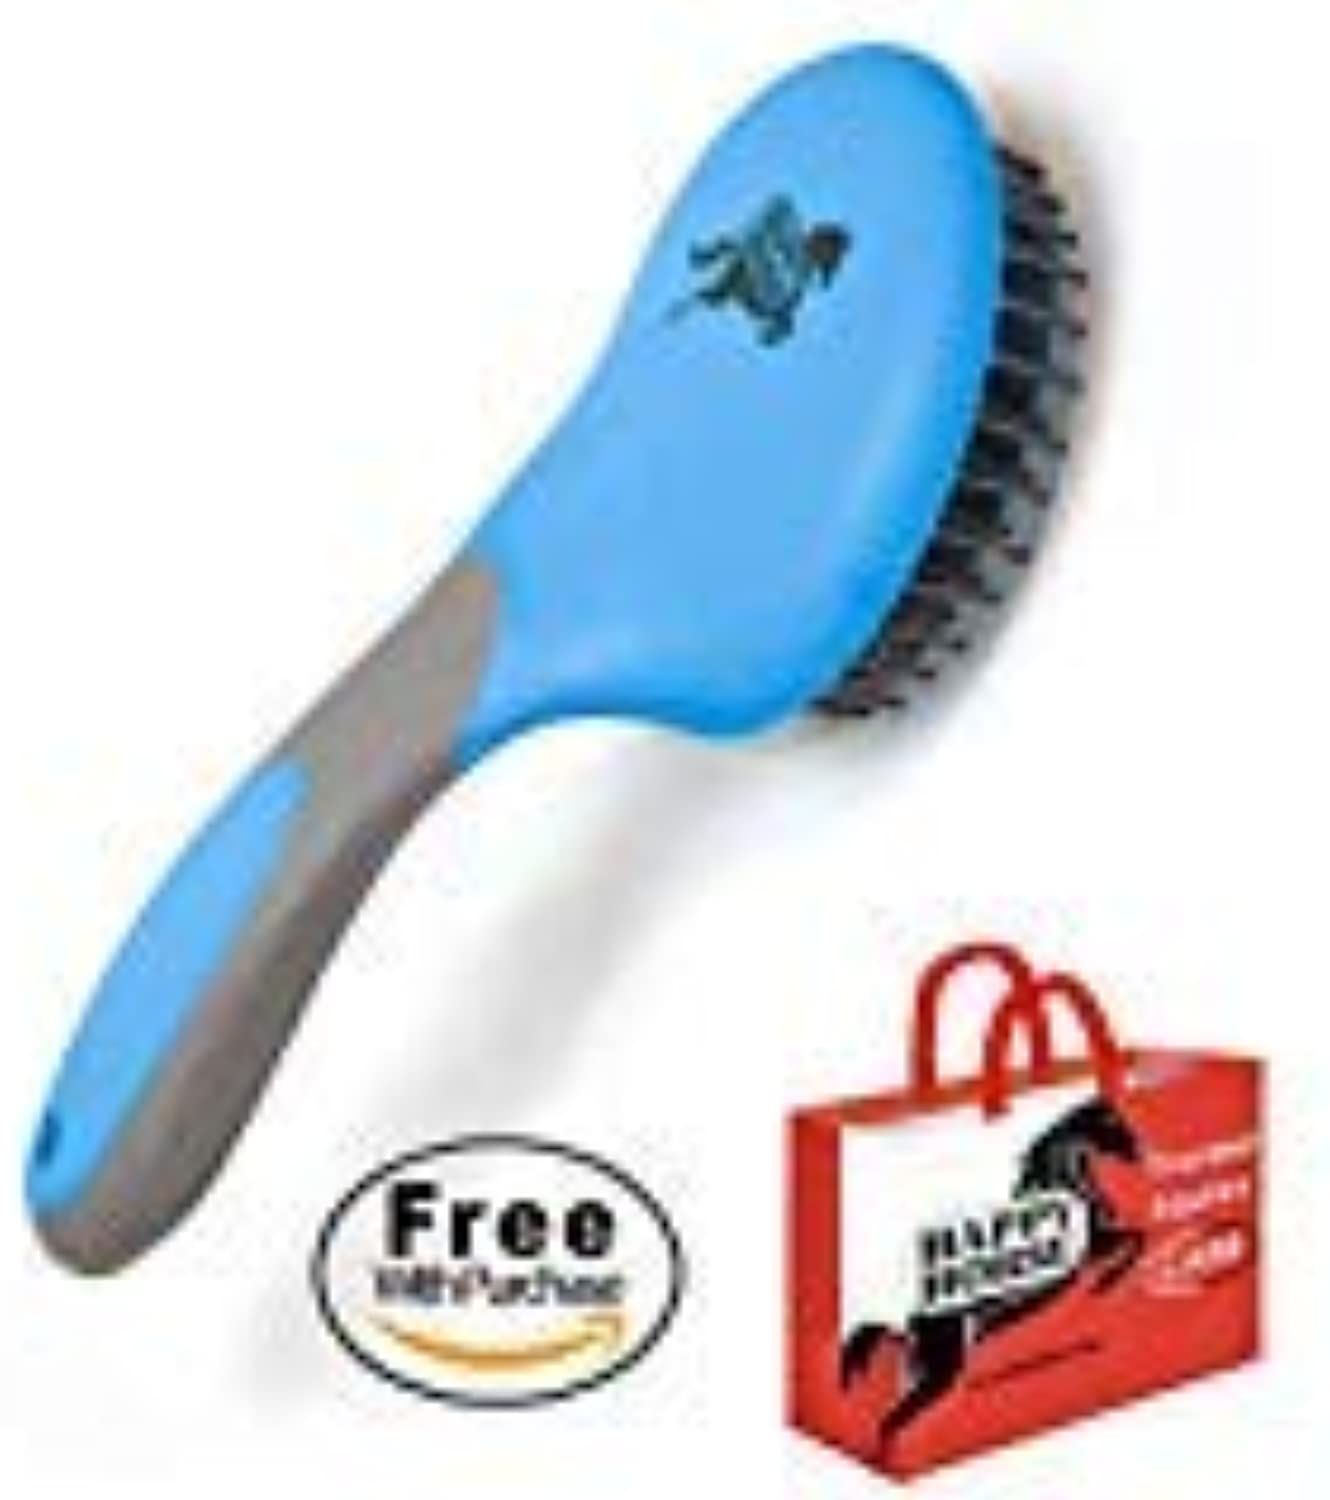 HARRIS FAMOUS ROACH TABLETS Happy Horse Mane & Tail Brush for Horses and Dogs, bluee